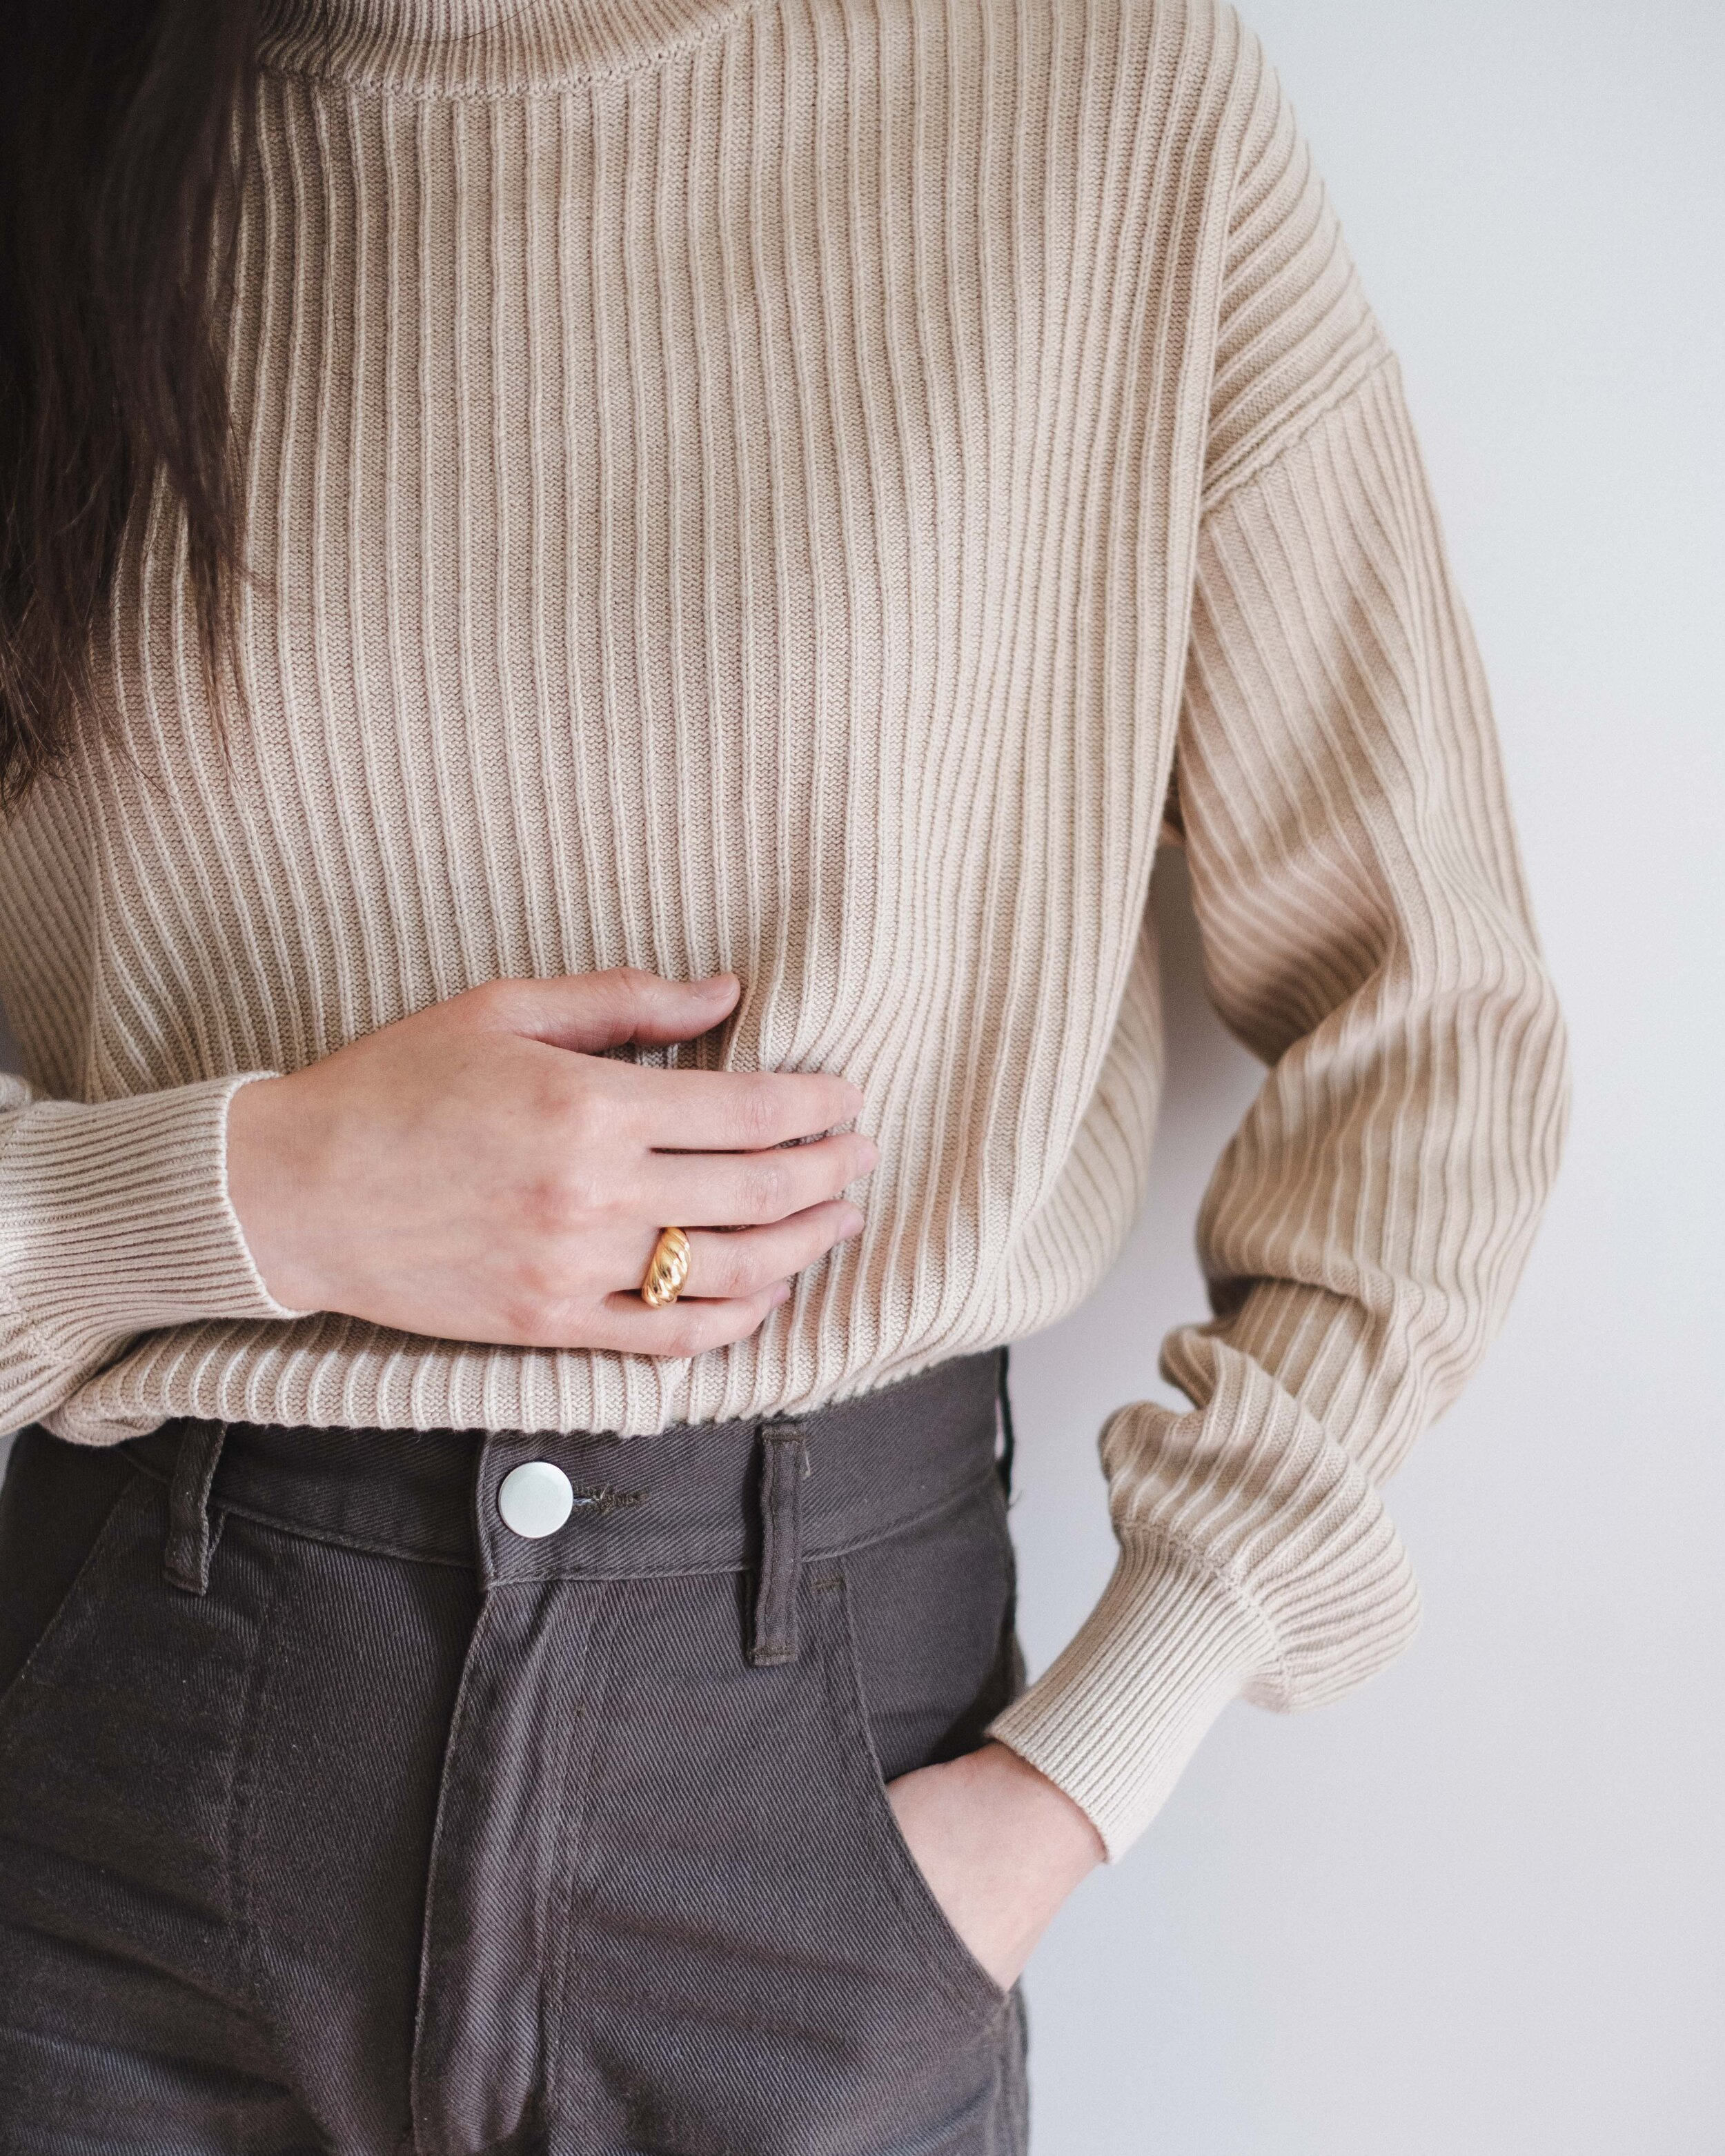 5 Transitional weather outfits to carry you into Fall - a weekly roundup